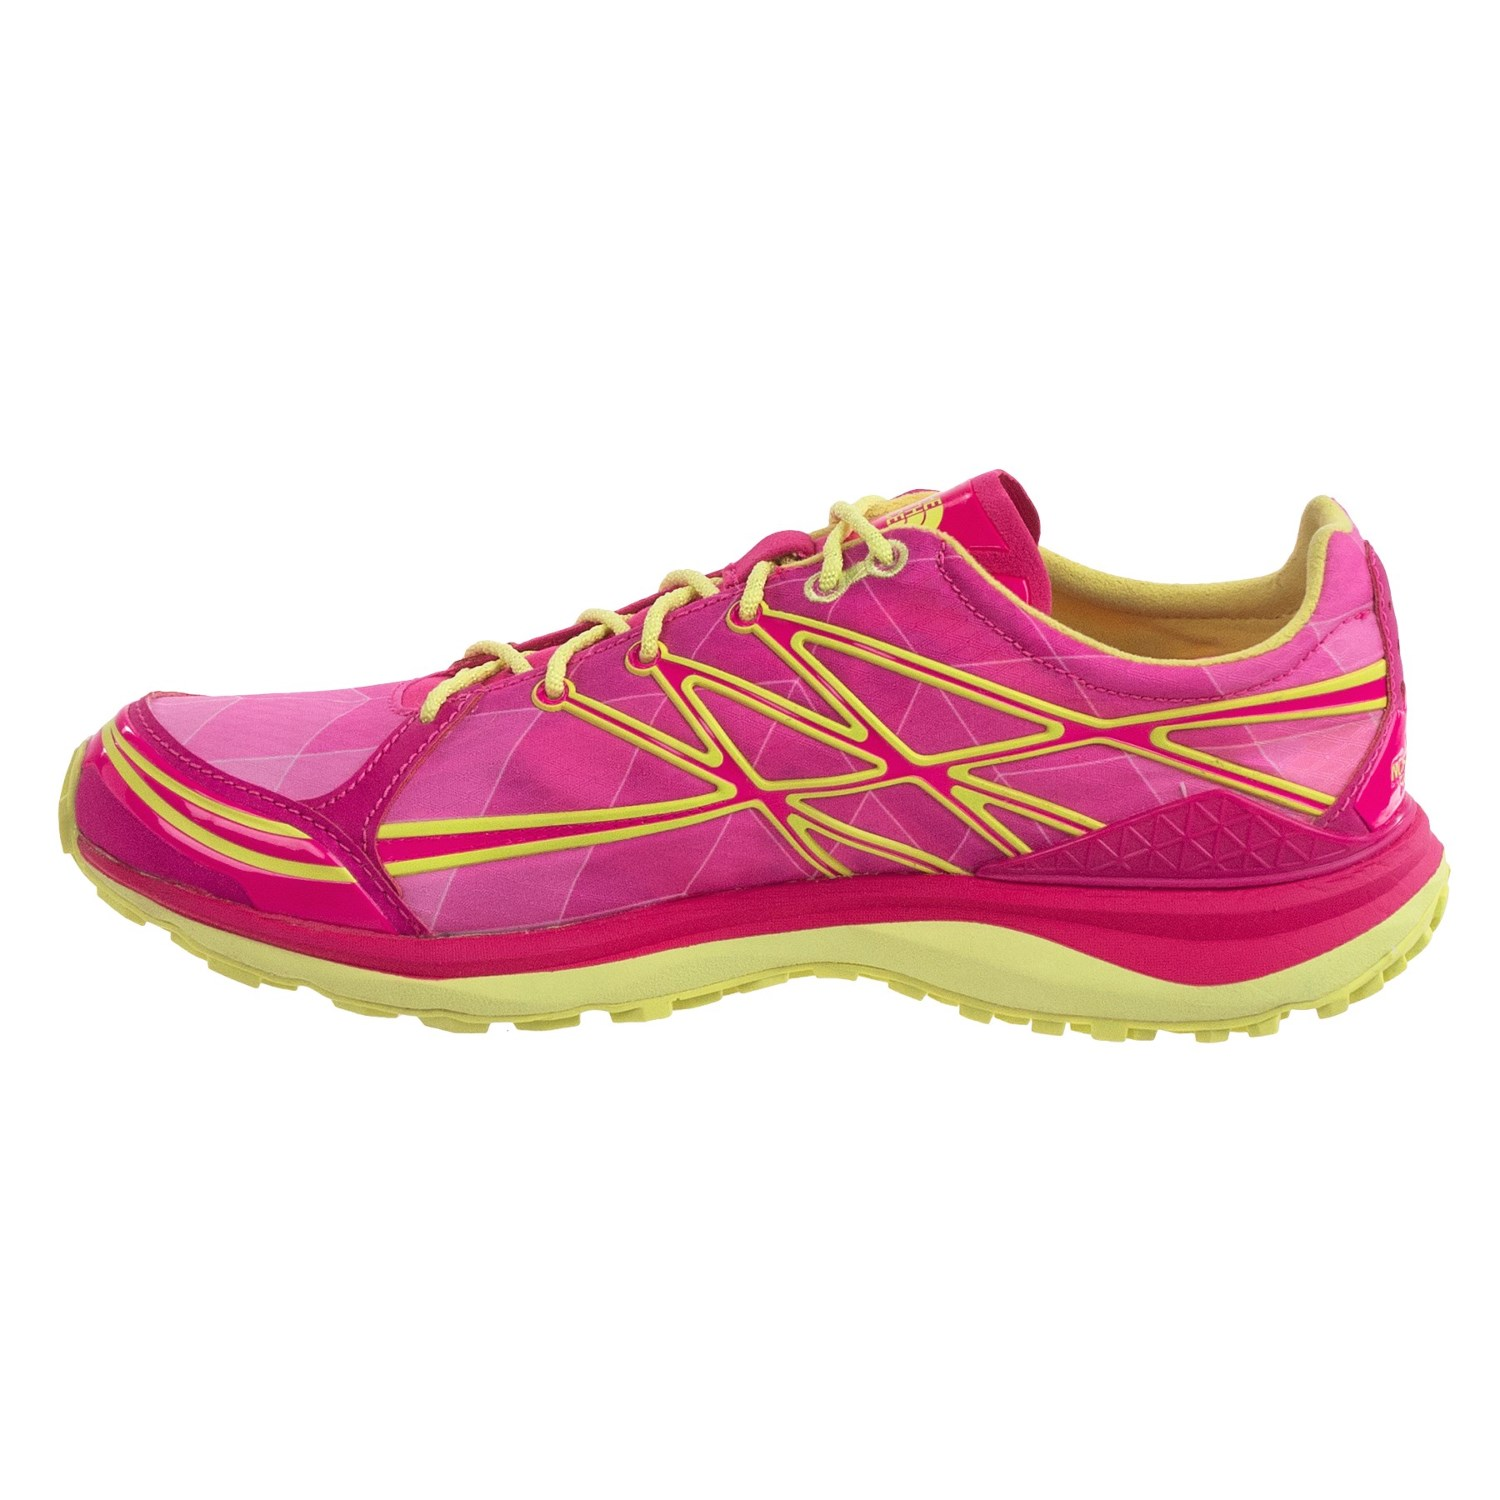 North Face Trail Shoes Women